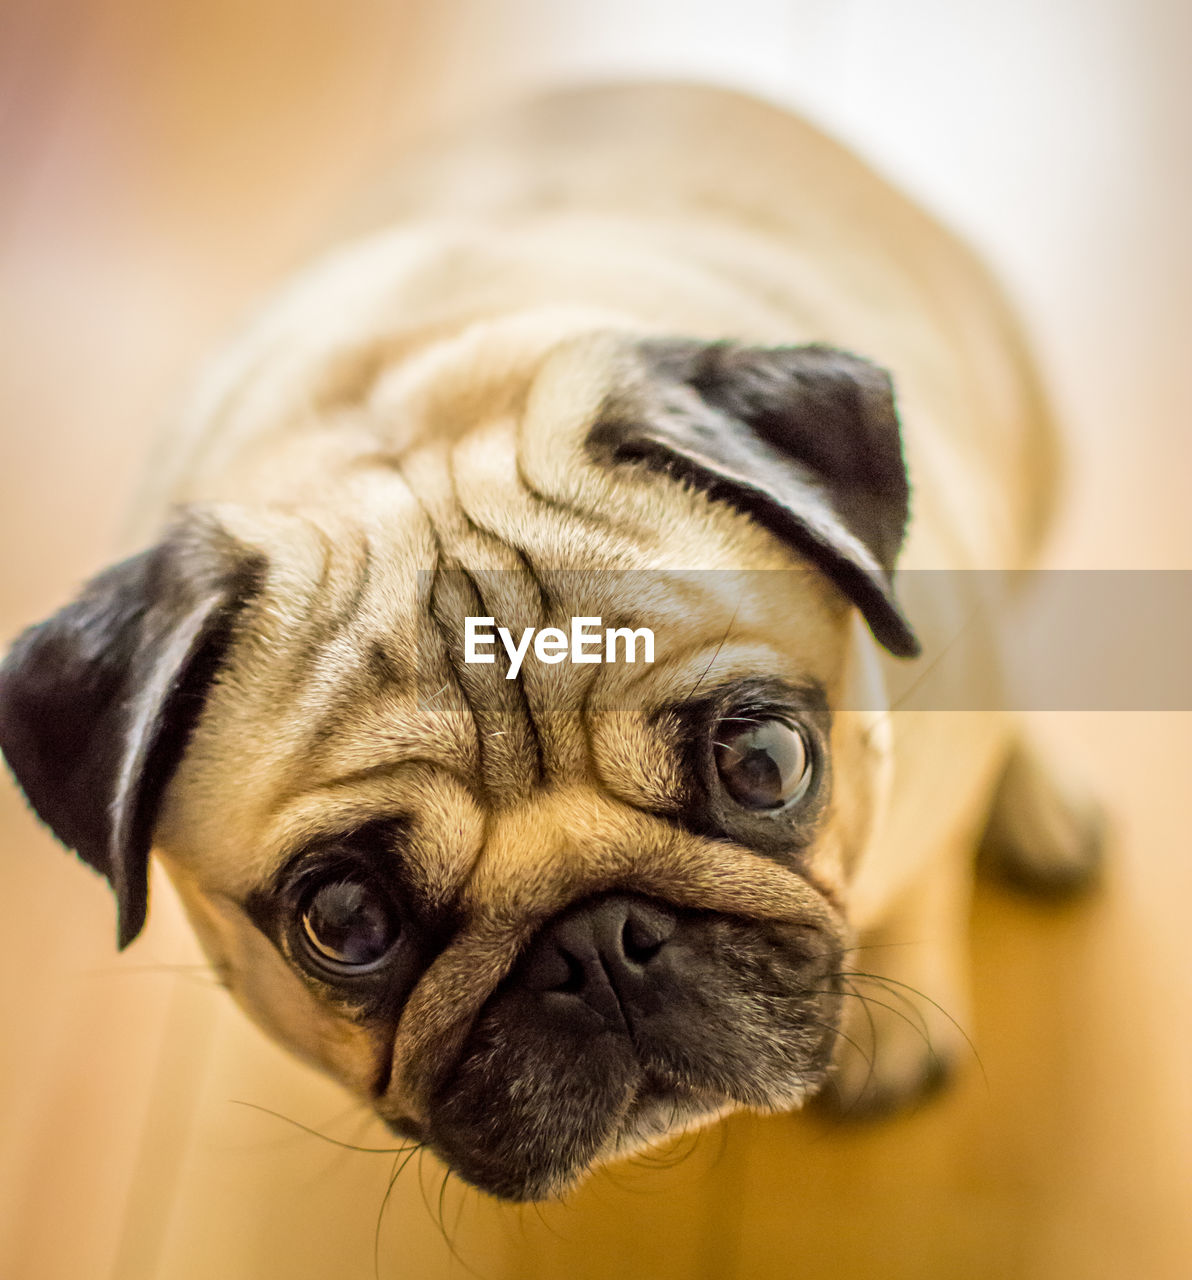 mammal, domestic animals, one animal, pets, domestic, animal themes, dog, canine, animal, vertebrate, pug, lap dog, indoors, close-up, portrait, no people, focus on foreground, small, animal body part, looking, animal head, animal eye